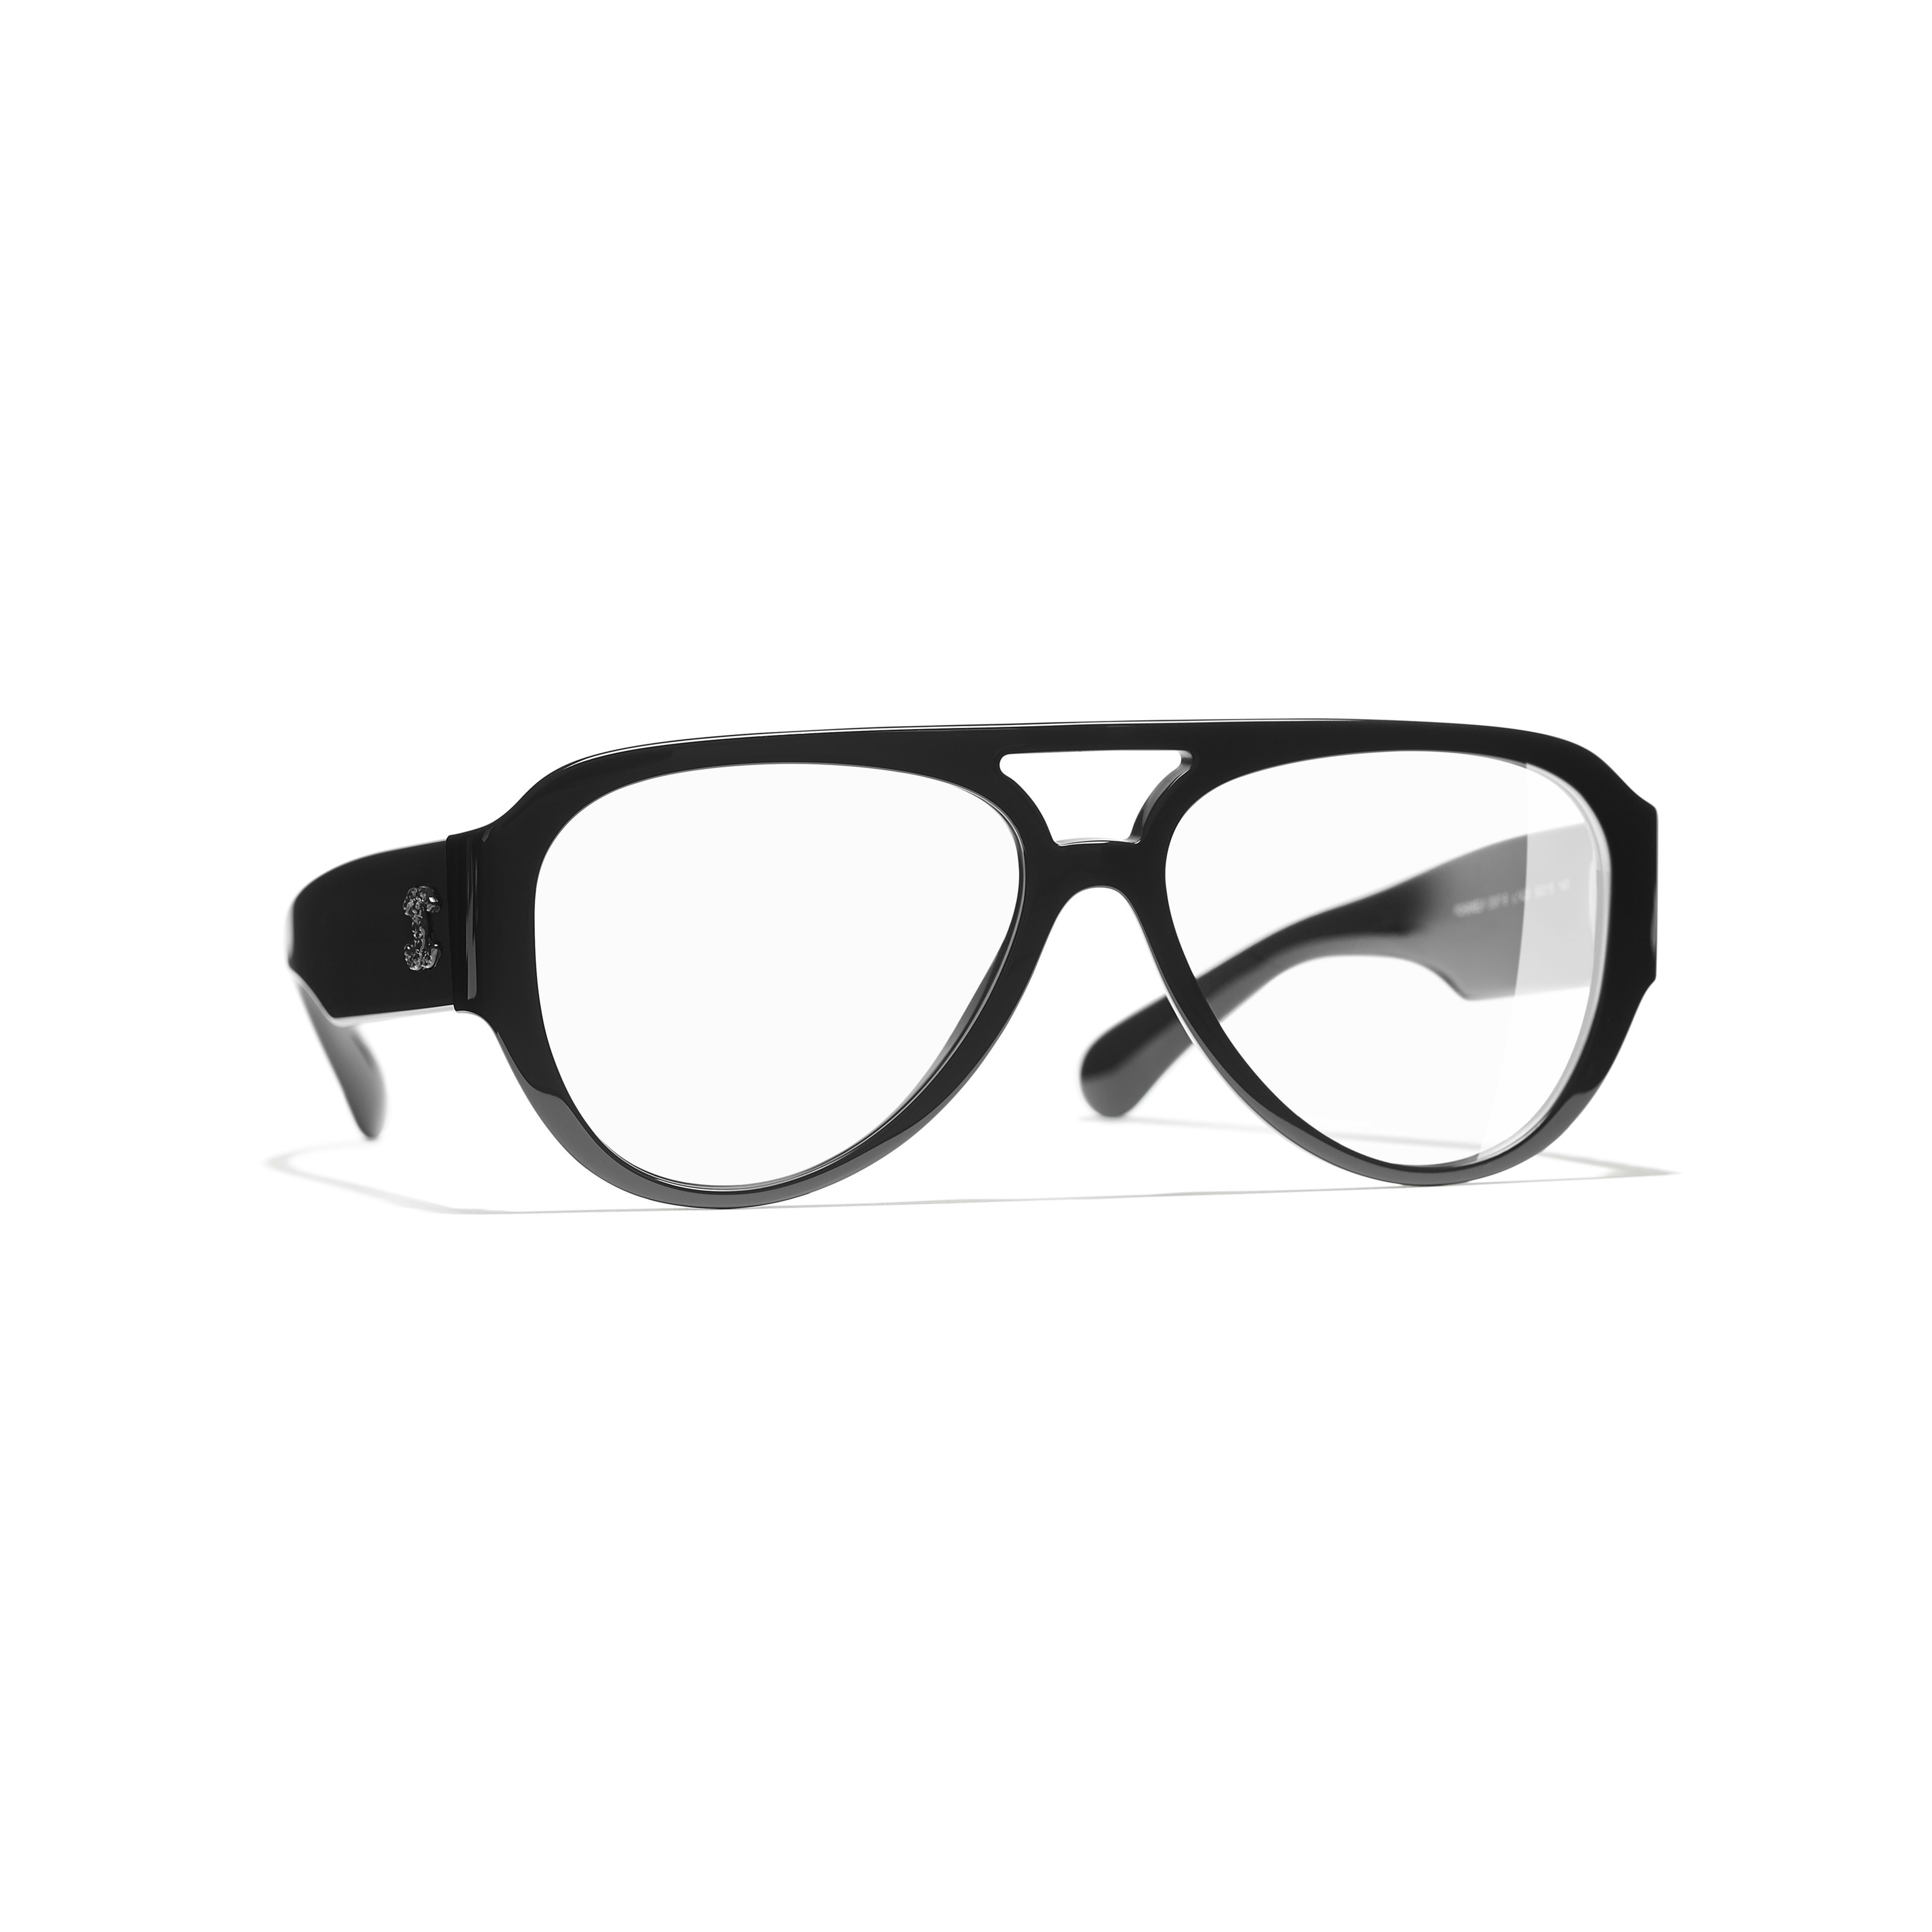 Pilot Eyeglasses - Black - Acetate & Strass - CHANEL - Default view - see standard sized version